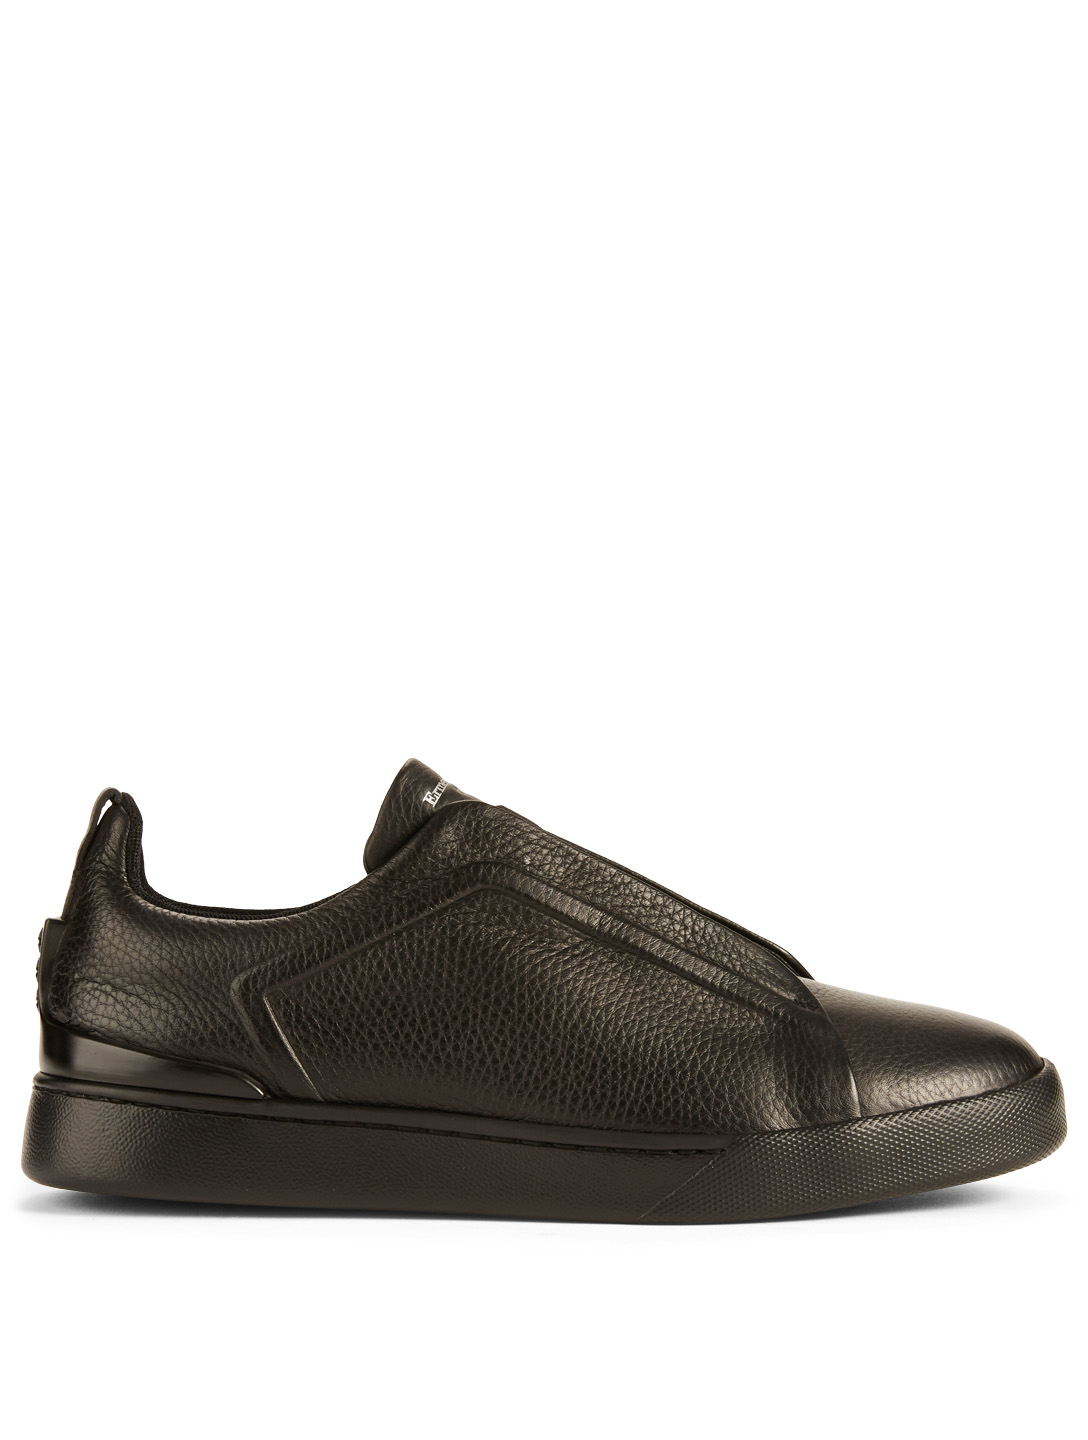 ERMENEGILDO ZEGNA Triple Stitch Leather Sneakers Men's Black